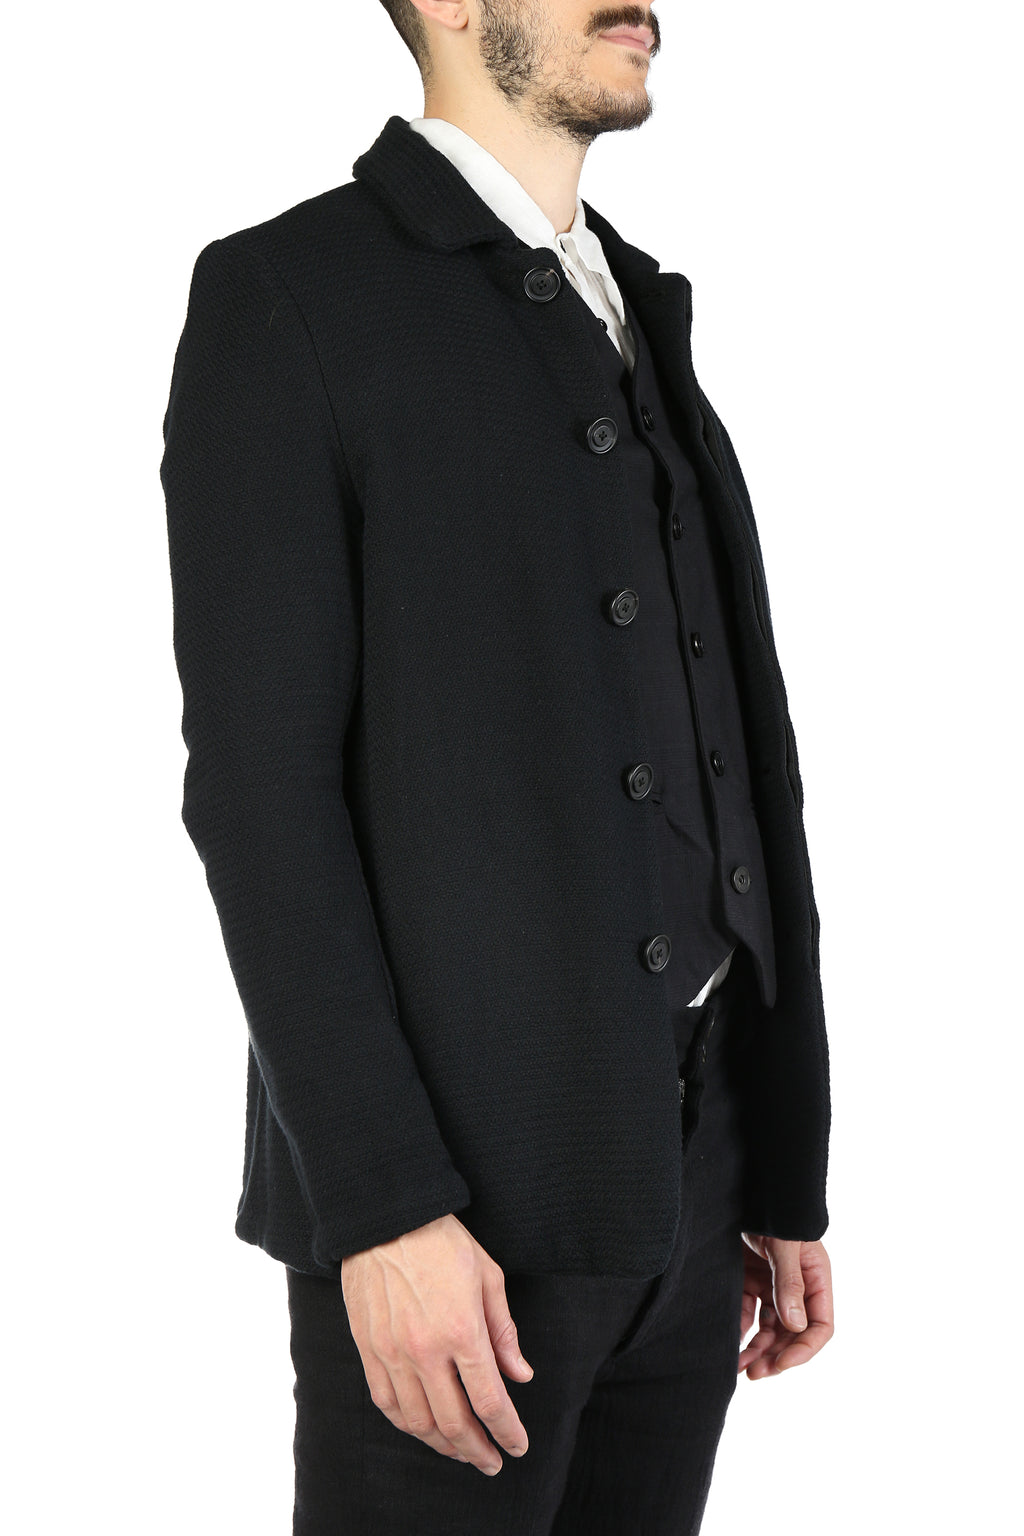 GEOFFREY B SMALL MEN HANDMADE FLY-FRONT EXTENDED LENGTH TAILORED BLUSON JACKET